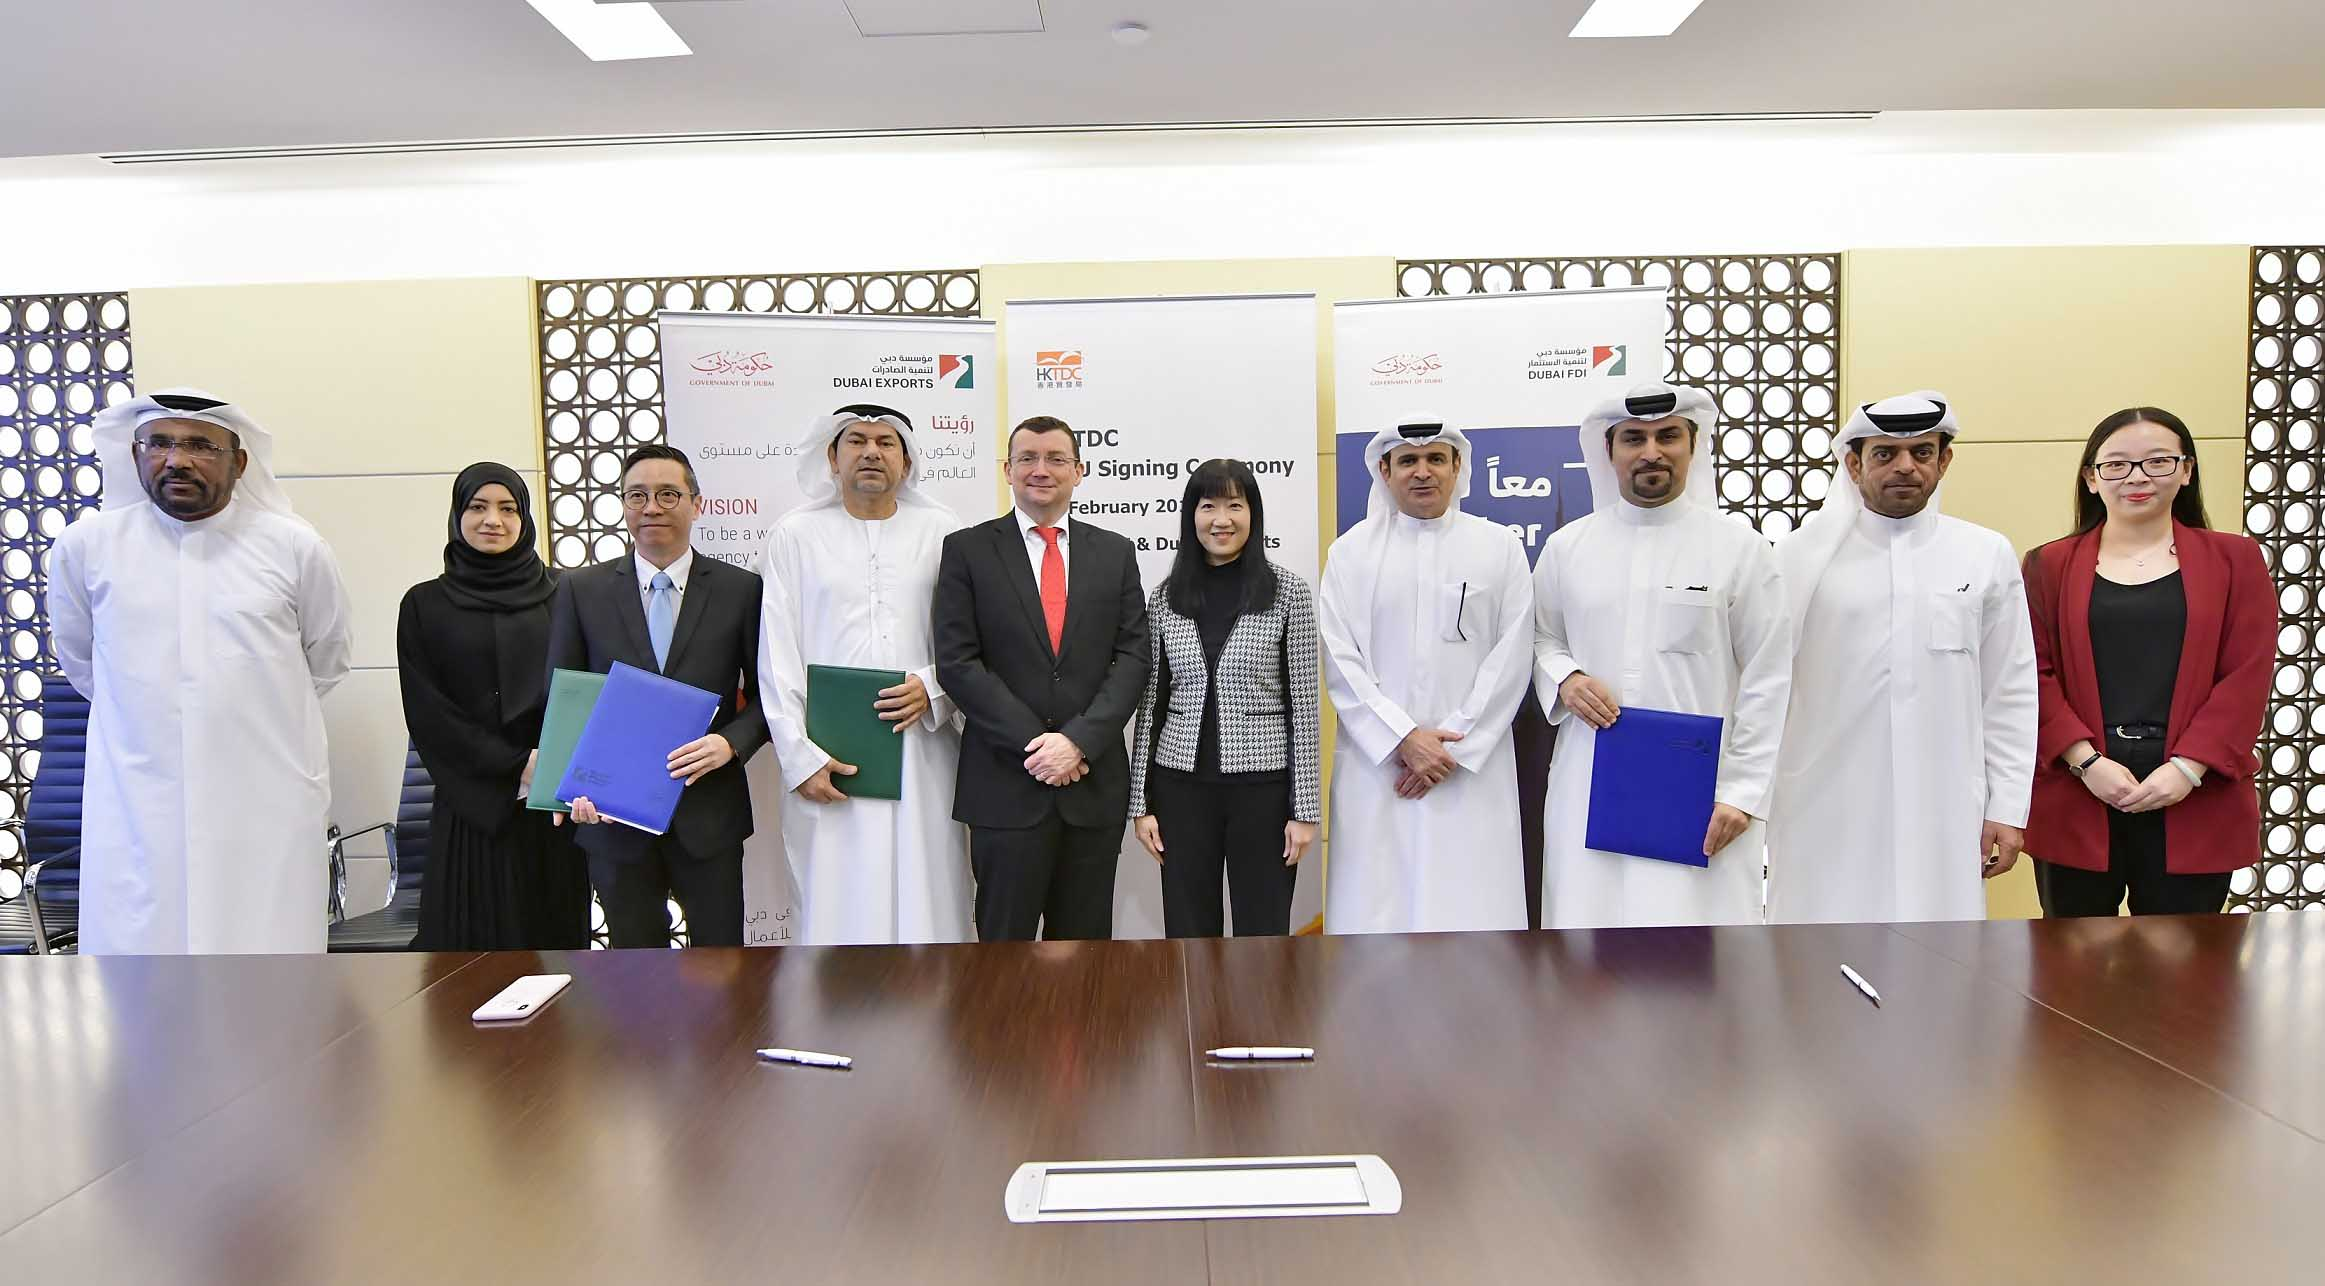 dubai, hong kong trade and investment networks forge stronger ties 1